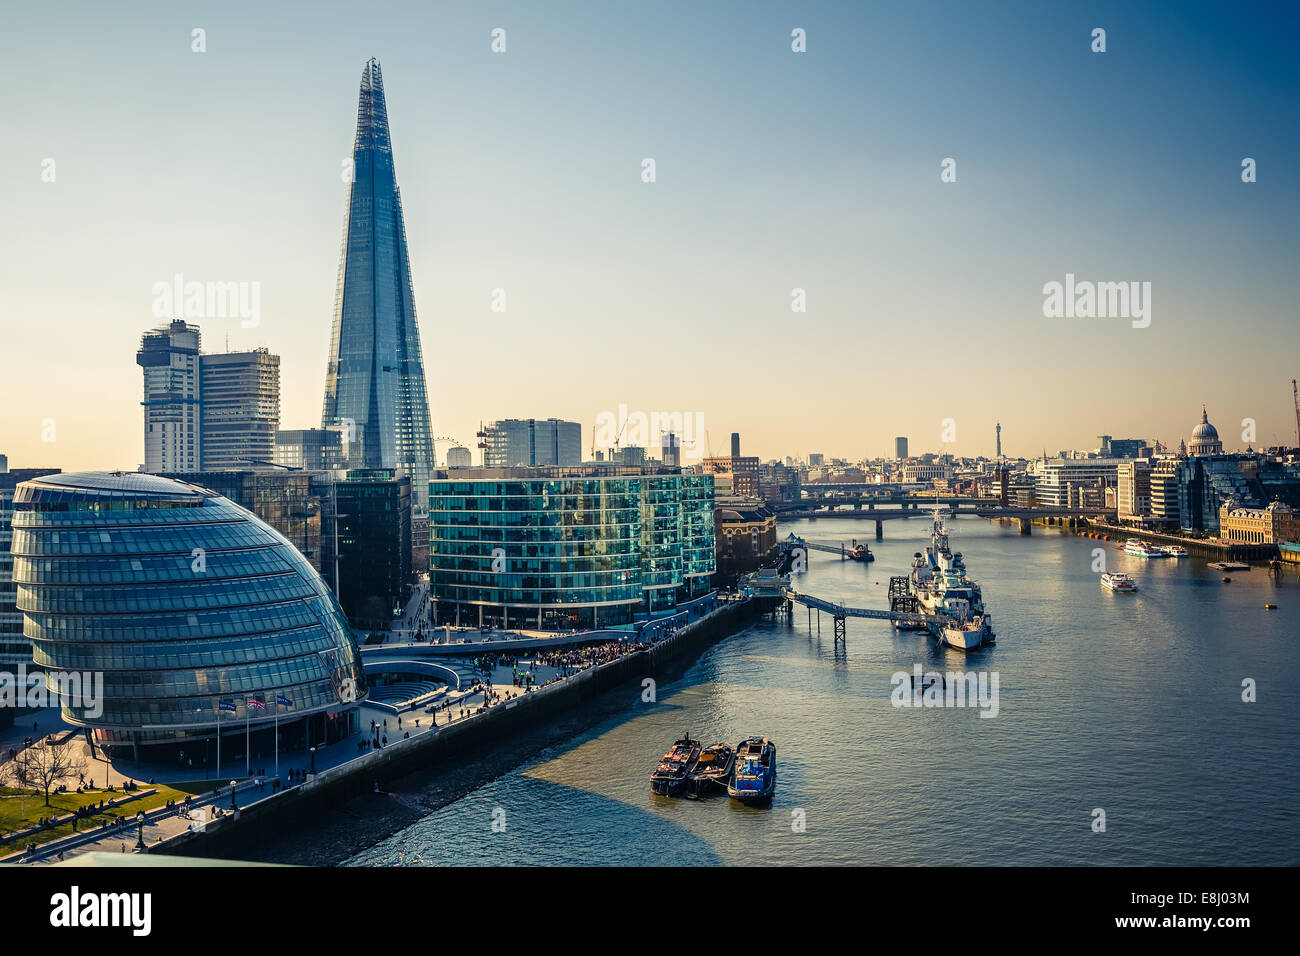 Thames and London City - Stock Image